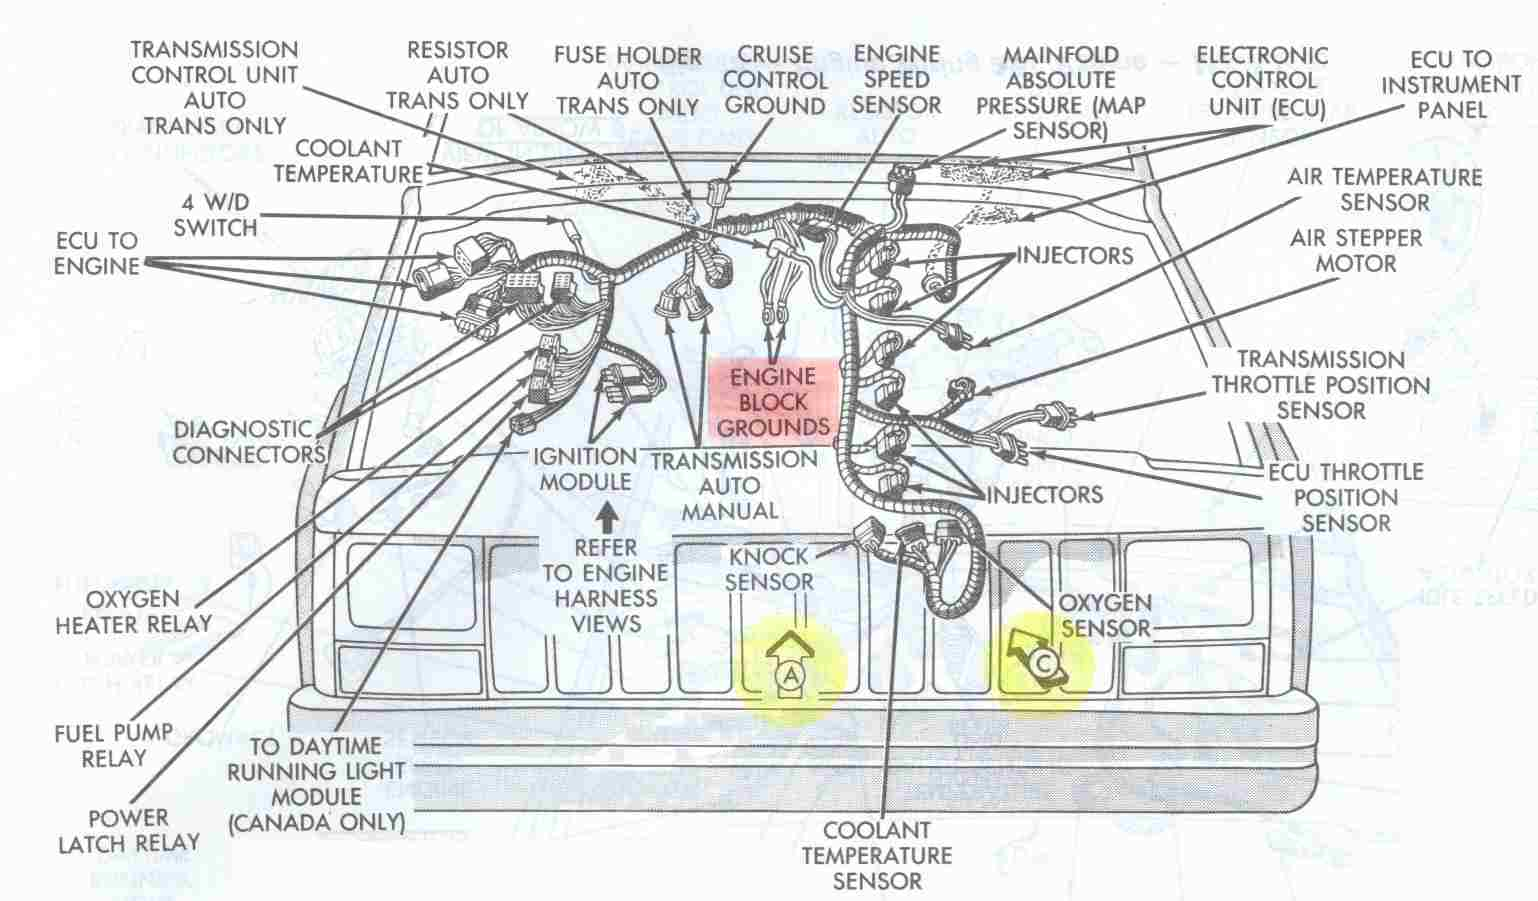 Electrical_Engine_Ground_Points_Overview jeep cherokee electrical diagnosing erratic behavior of engine 94 jeep cherokee wiring diagram at gsmx.co